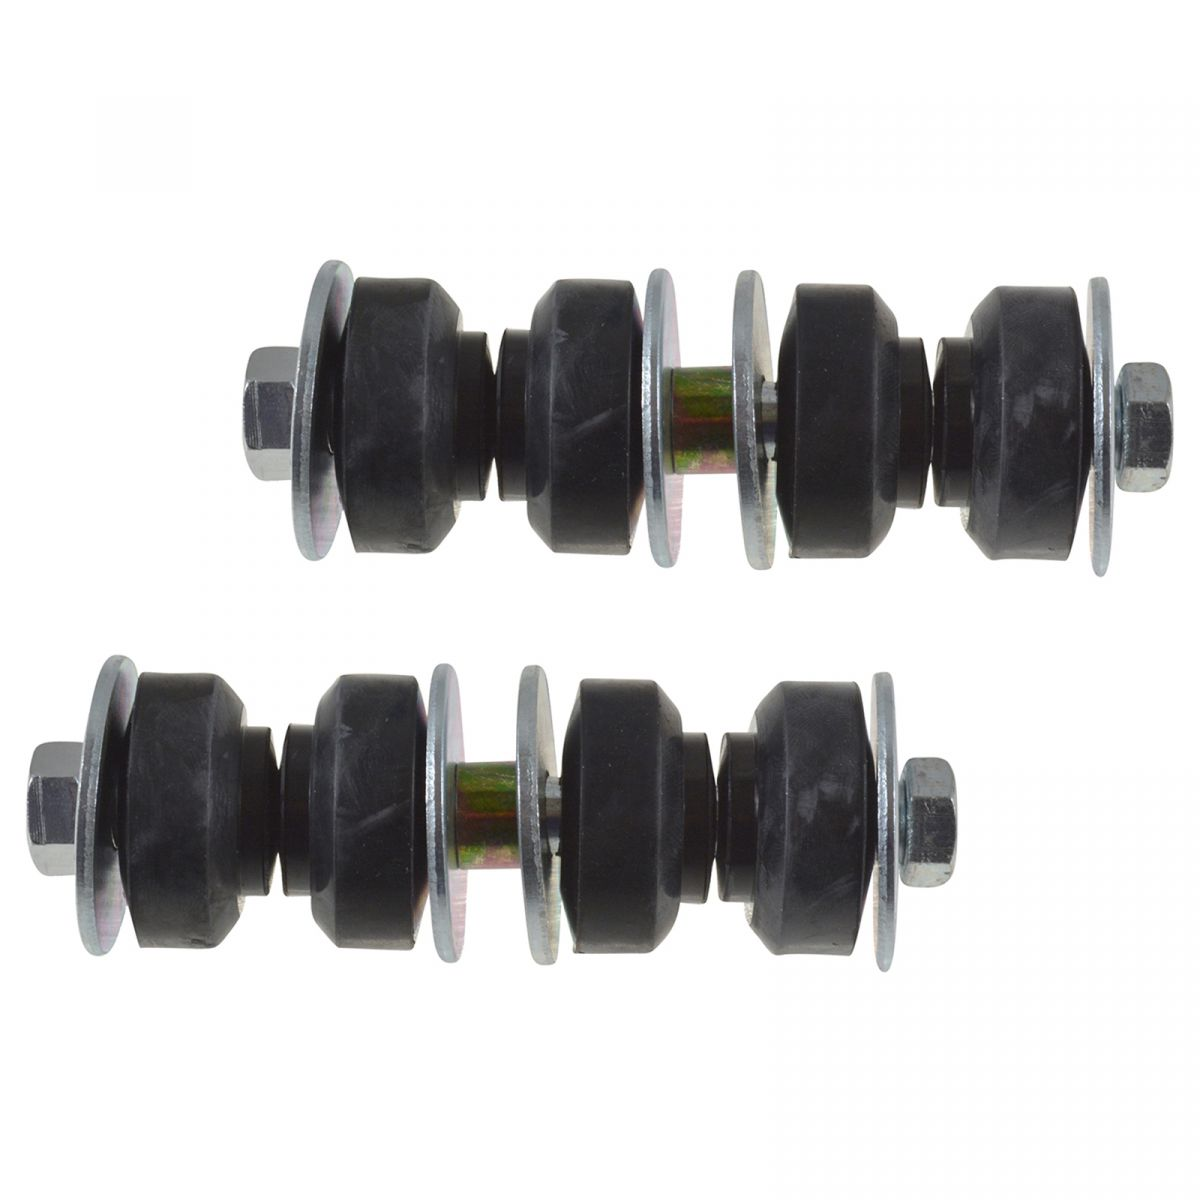 Front Sway Bar End Link Pair Set Suspension for Odyssey Accord Oasis